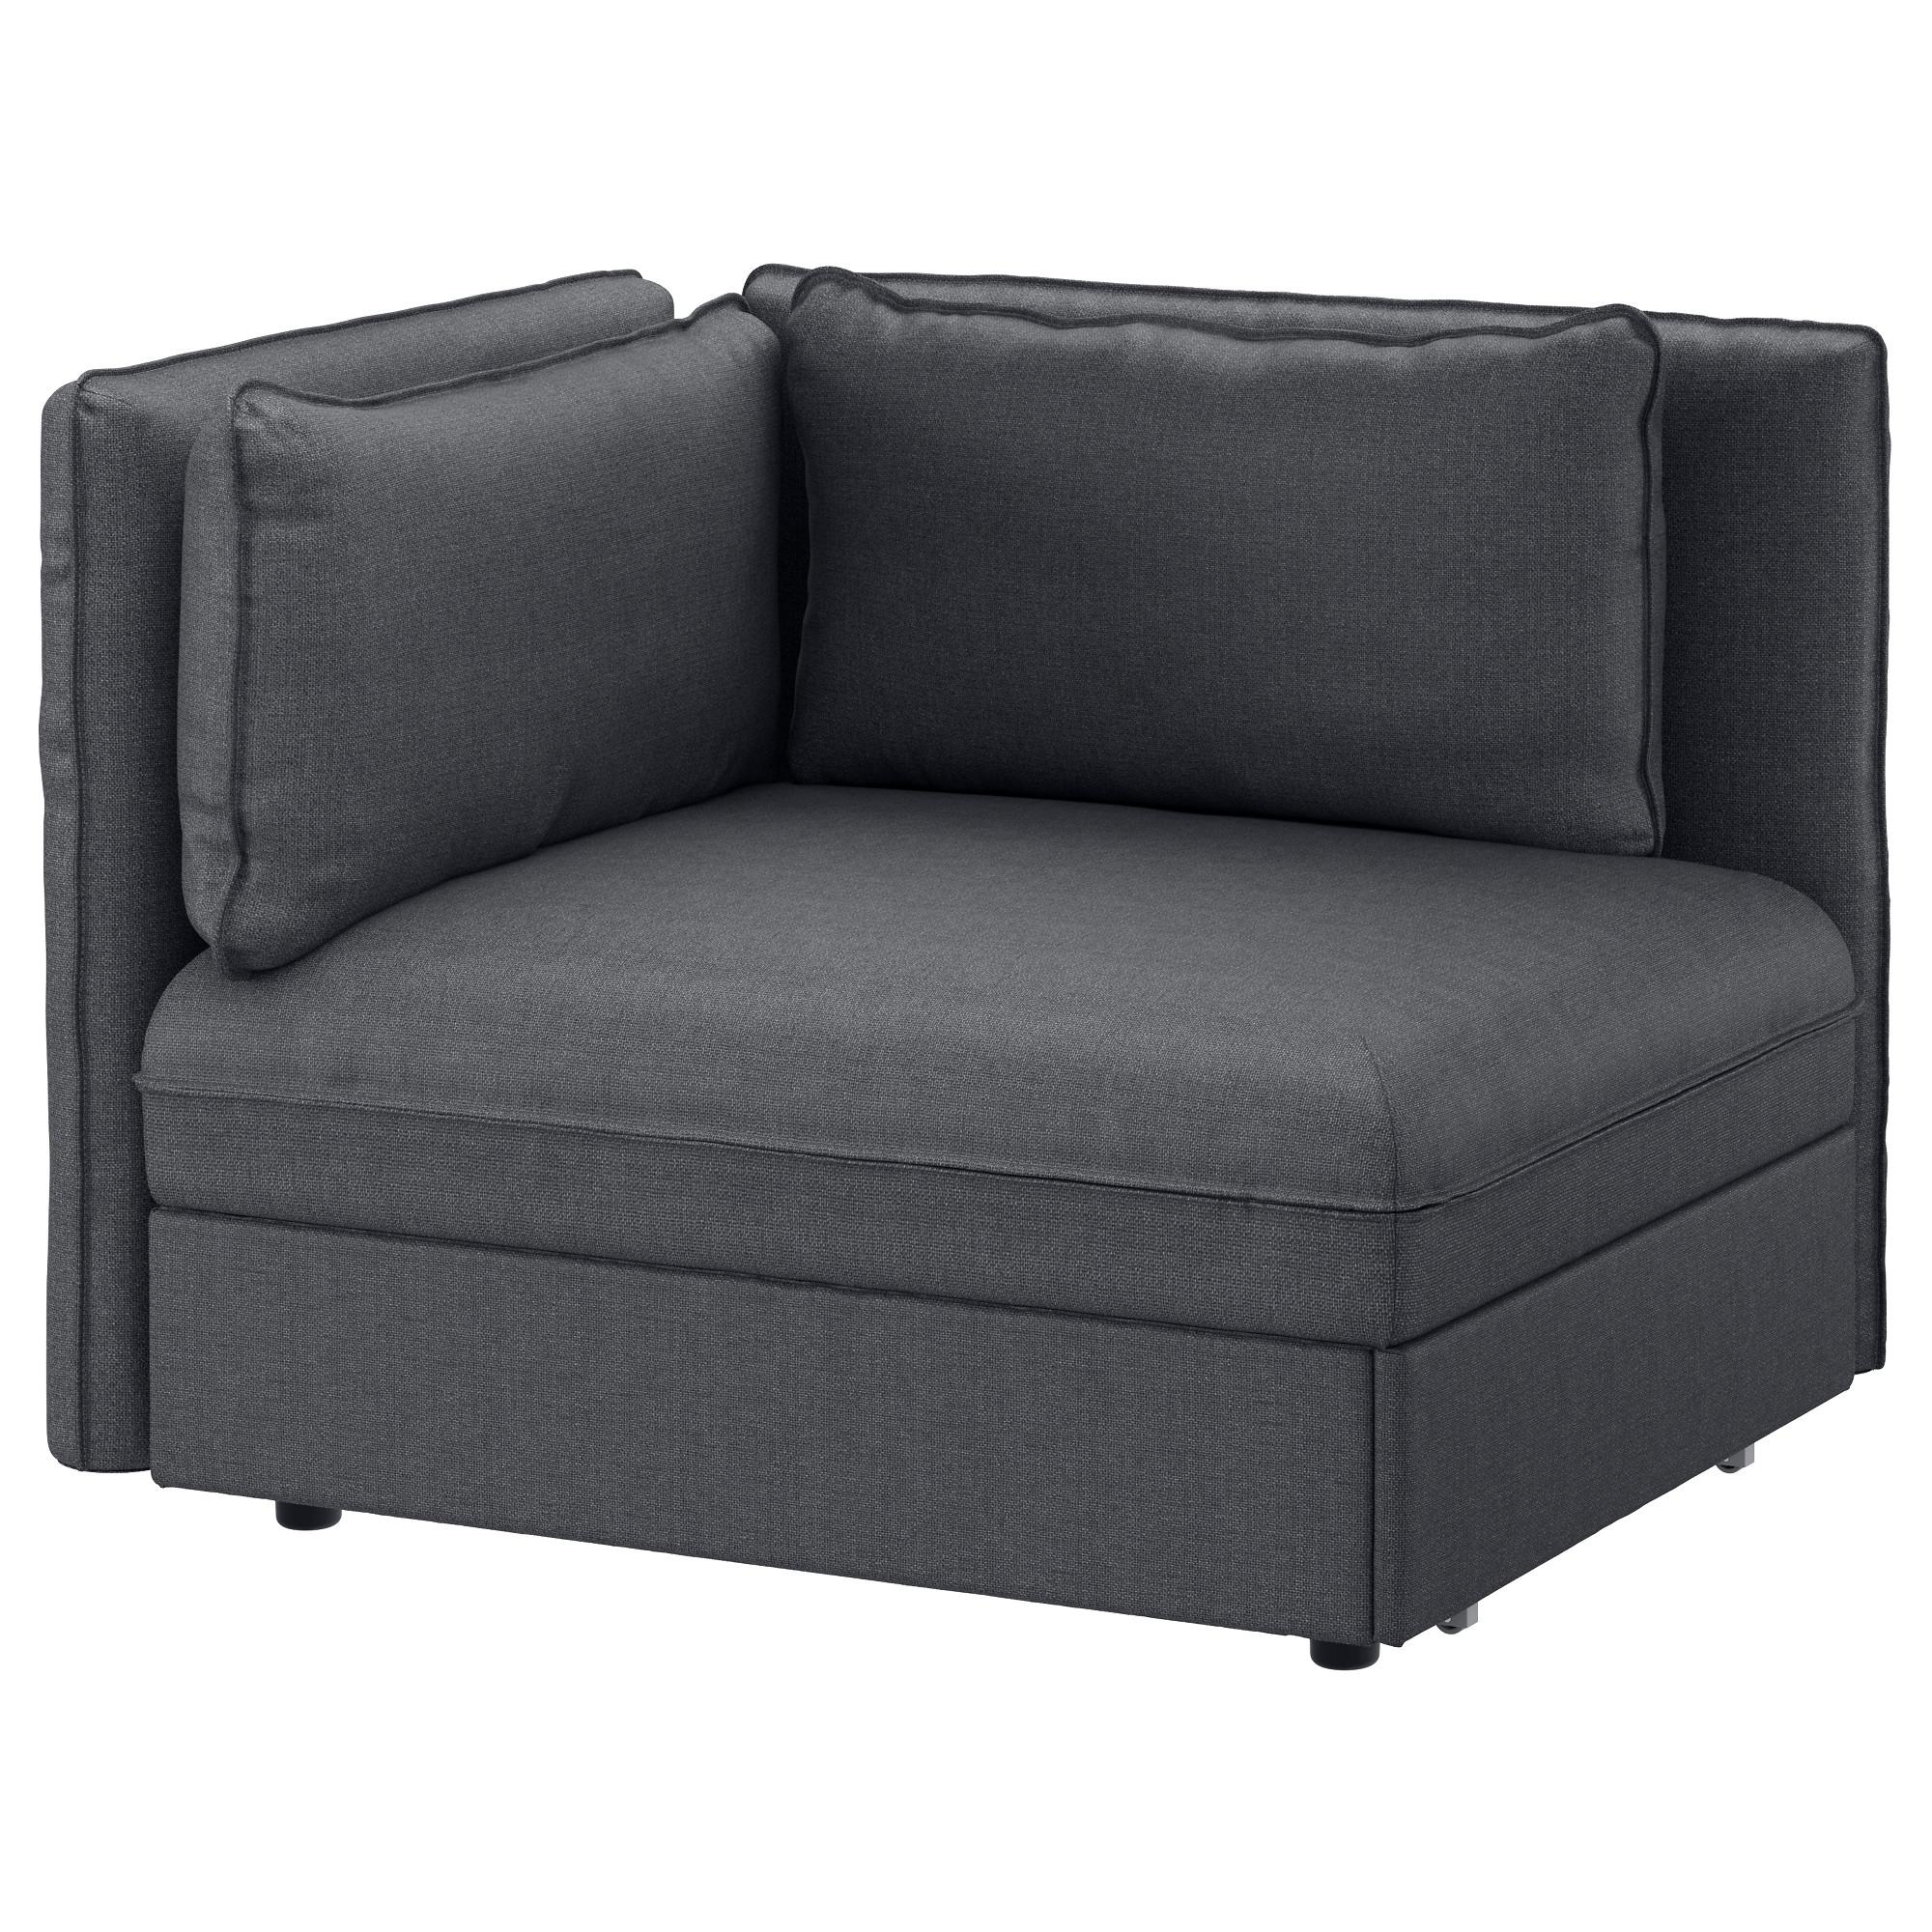 Sofa Beds & Futons – Ikea Pertaining To Ikea Sleeper Sofa Sectional (Image 15 of 20)